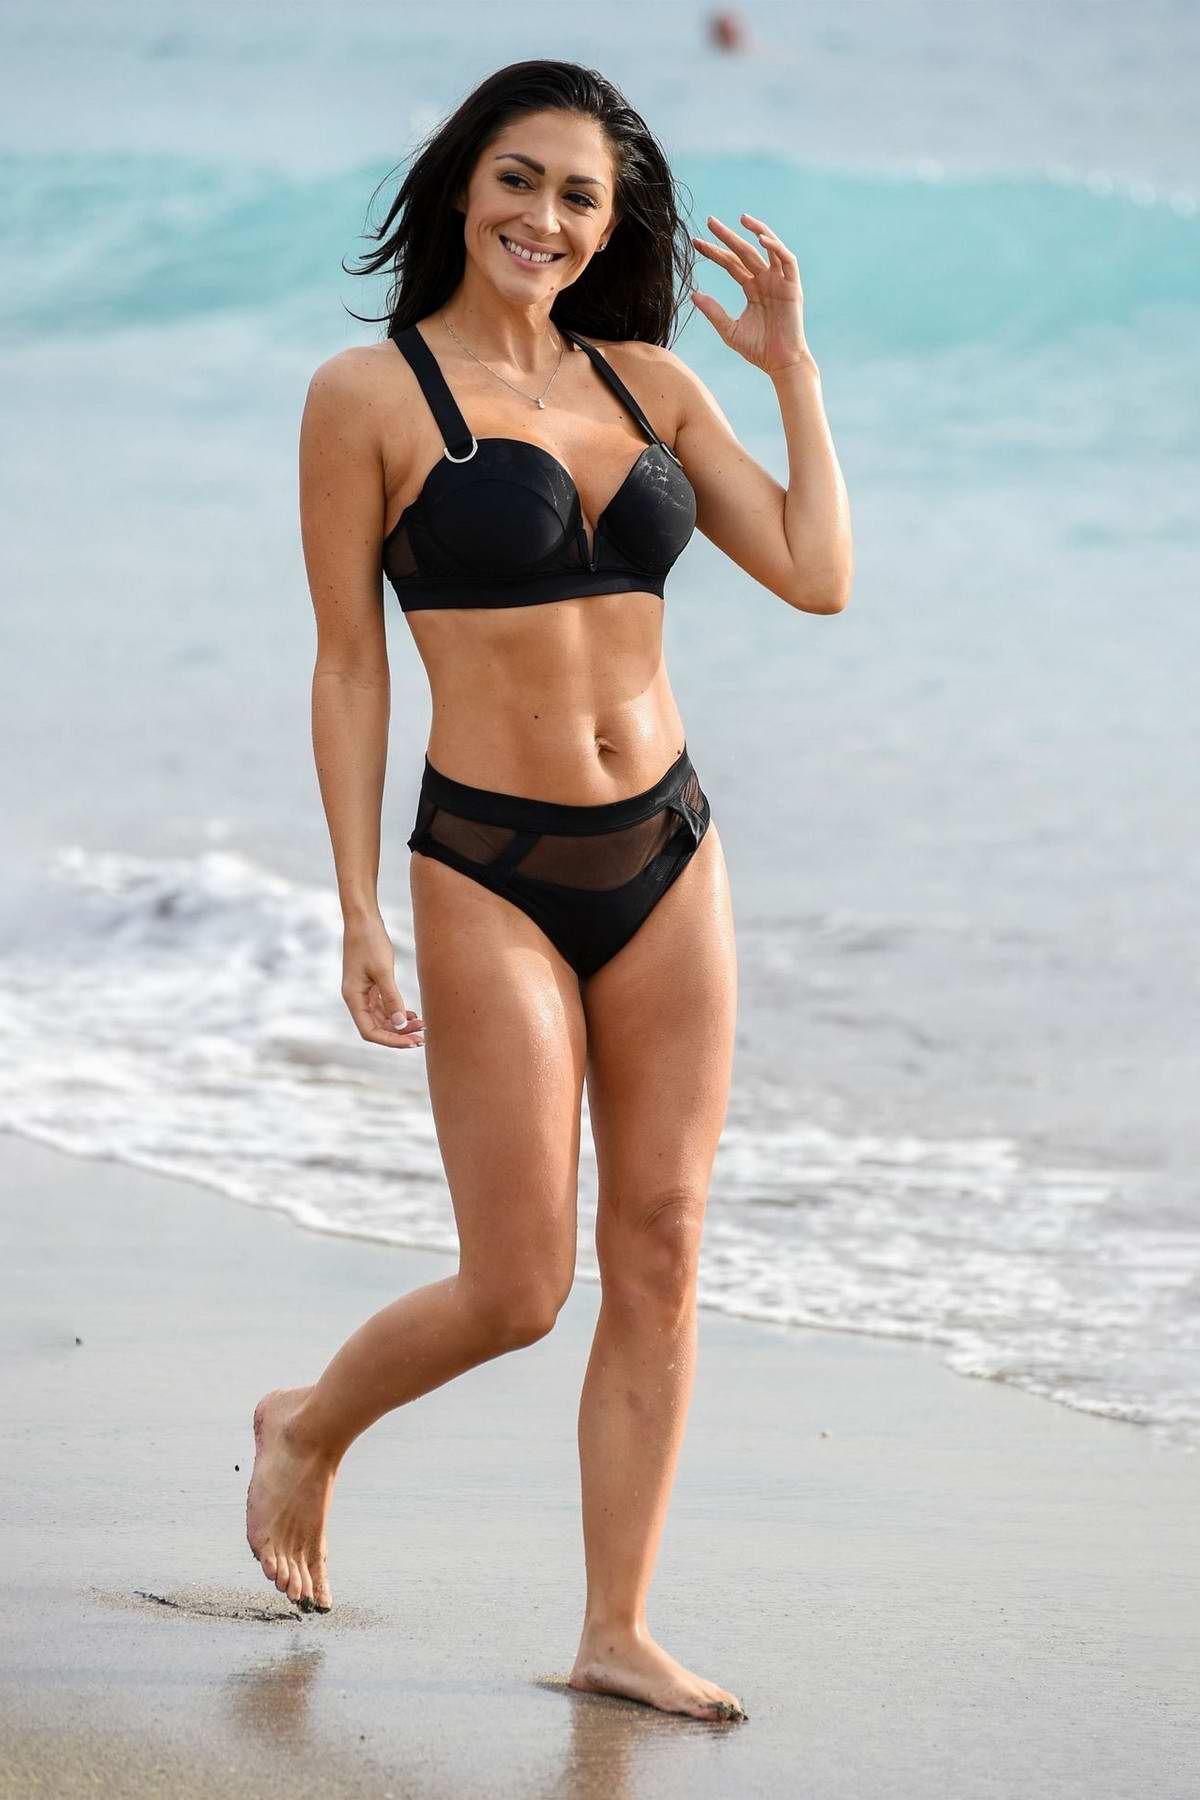 Casey Batchelor dons a black bikini while filming for her yoga app 'Yoga Blitz' in Tenerife, Spain